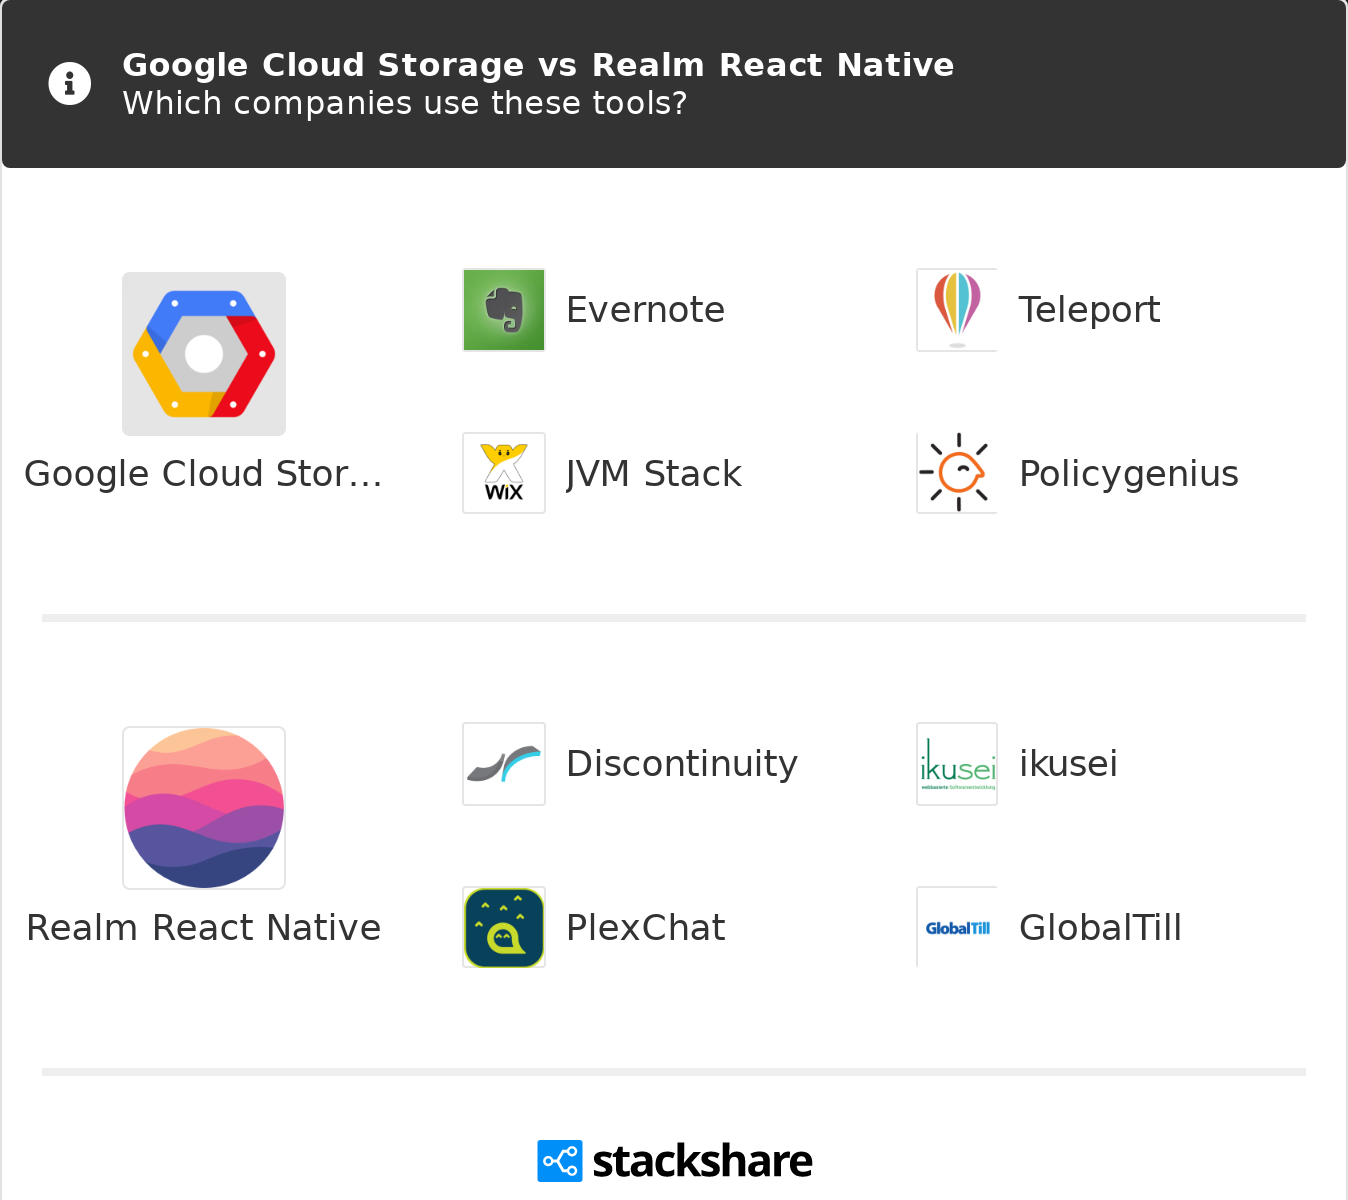 Google Cloud Storage vs Realm React Native | What are the